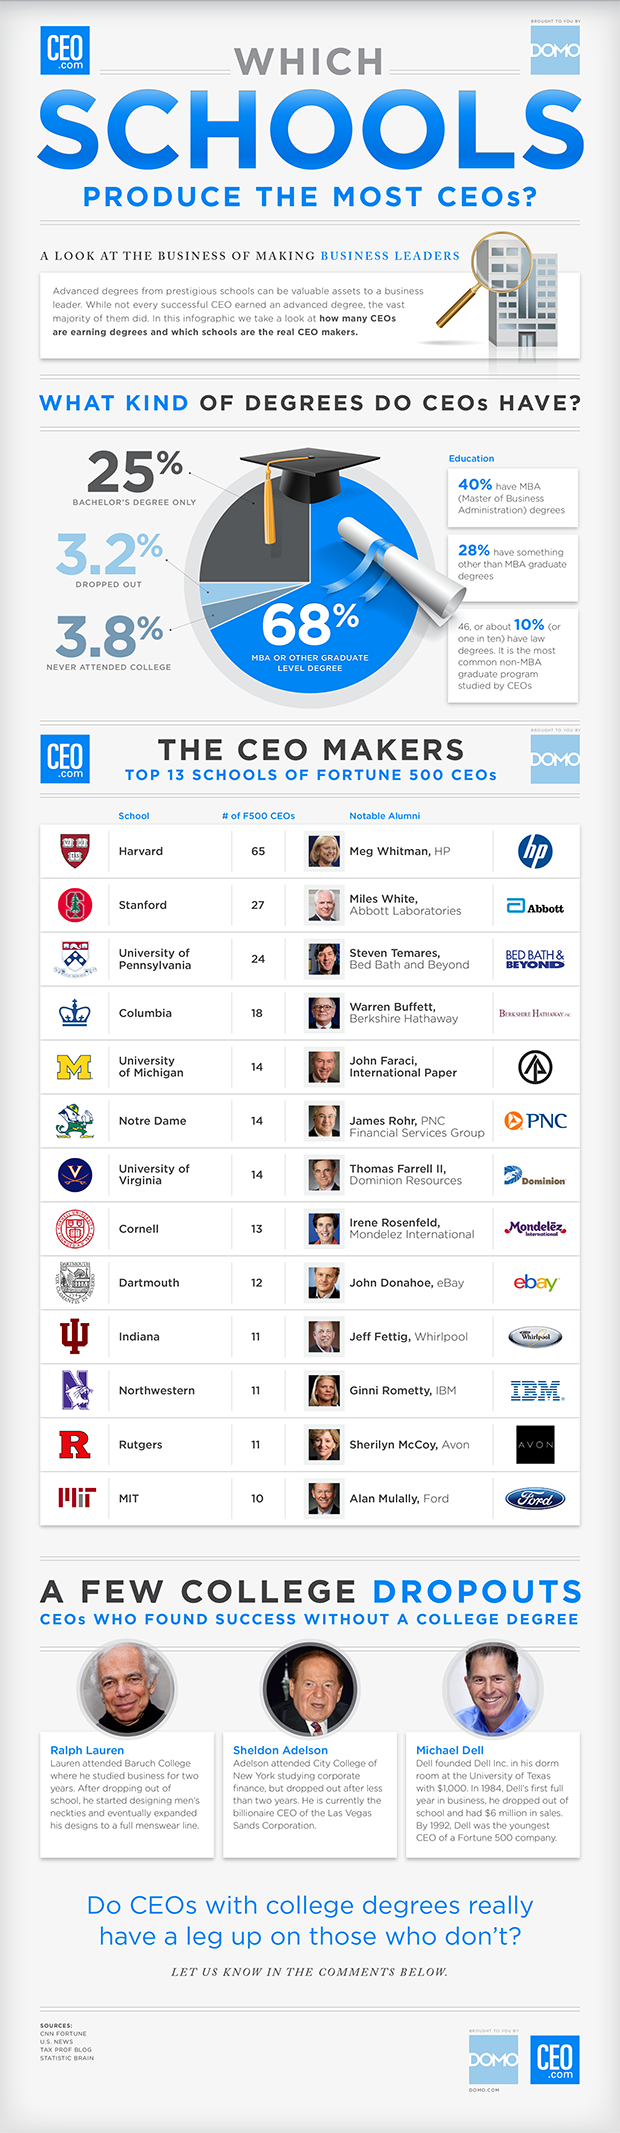 Fortune 500 CEOs-by-College